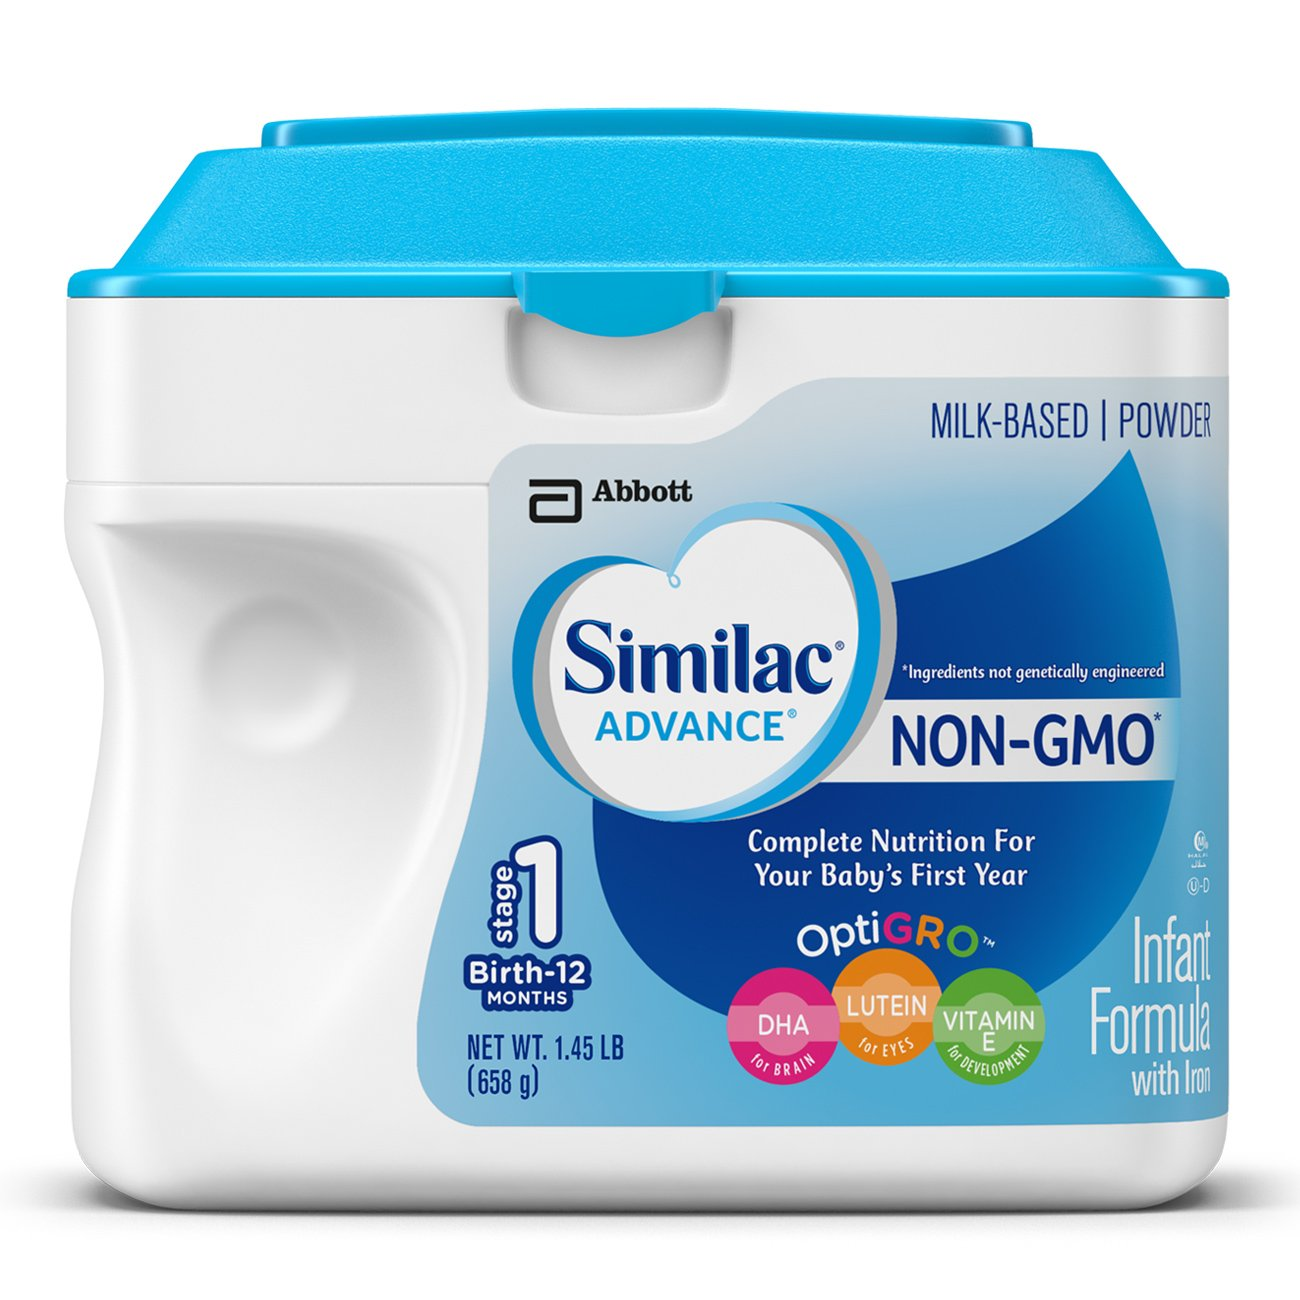 Similac Advance Non-GMO Infant Formula